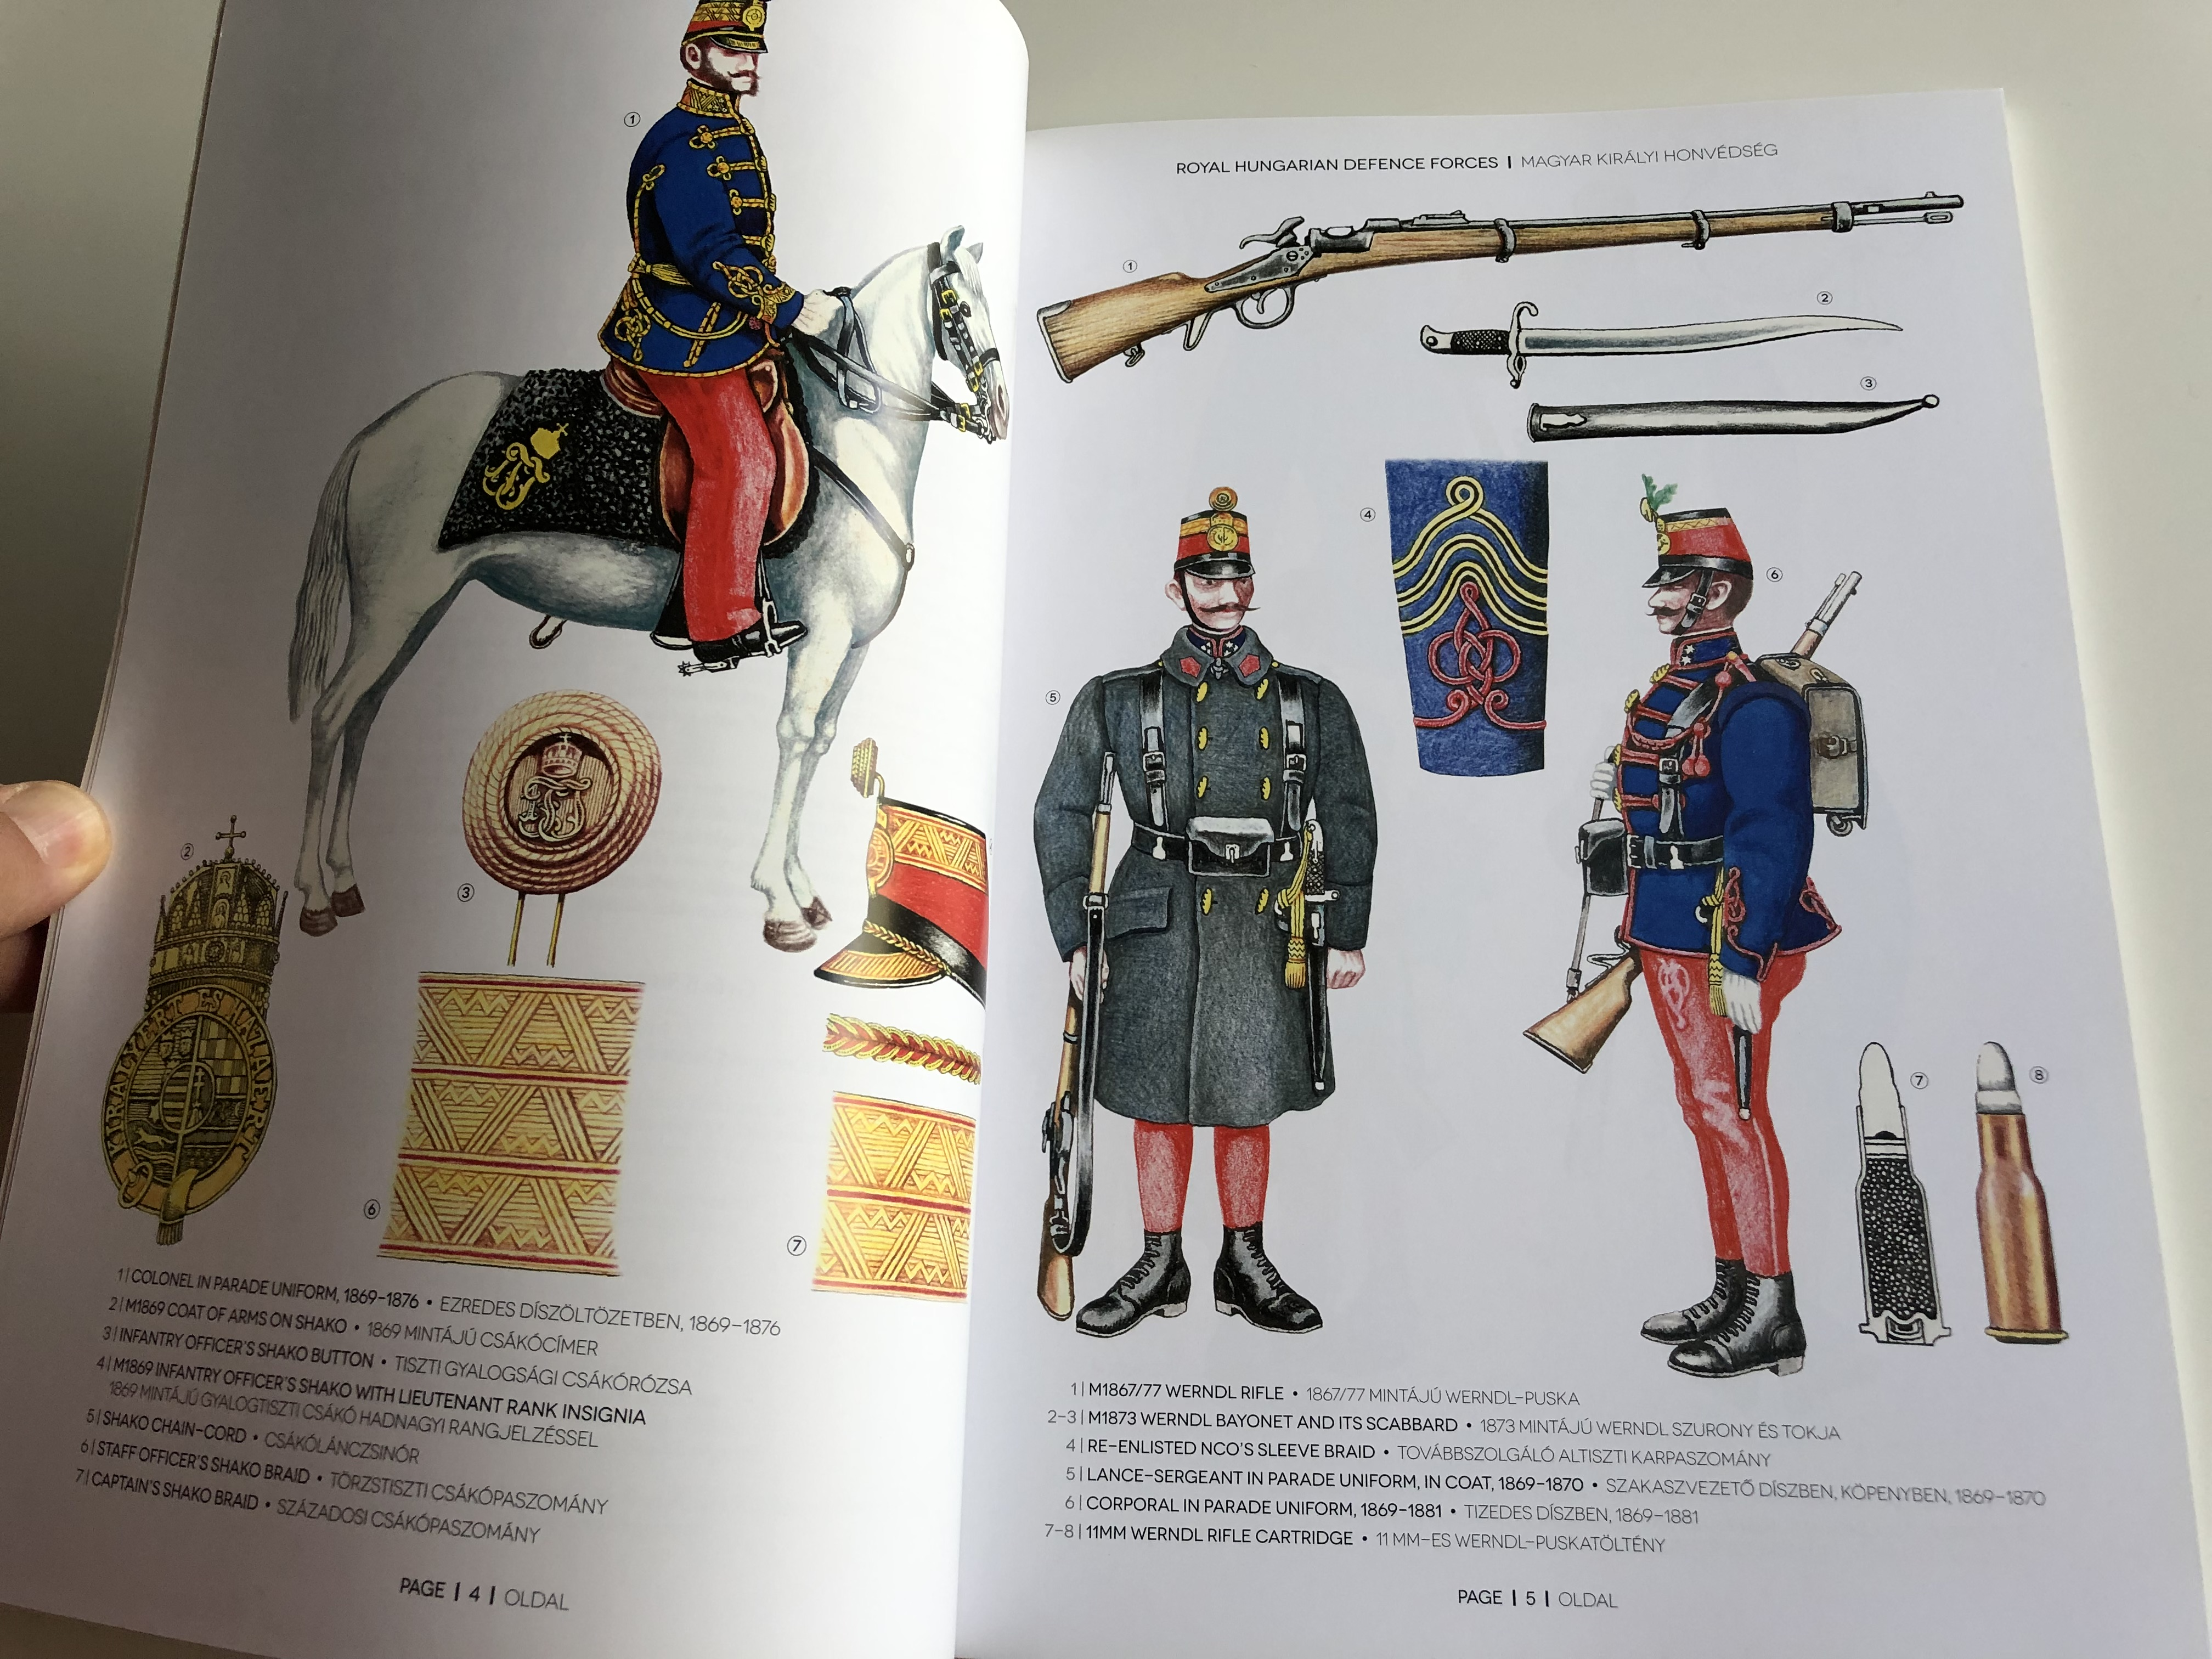 royal-hungarian-defence-forces-1868-1914-by-gy-z-somogyi-magyar-kir-lyi-honv-ds-g-1868-1914-a-millenium-in-the-military-egy-ezred-v-hadban-paperback-2014-hm-zr-nyi-3-.jpg